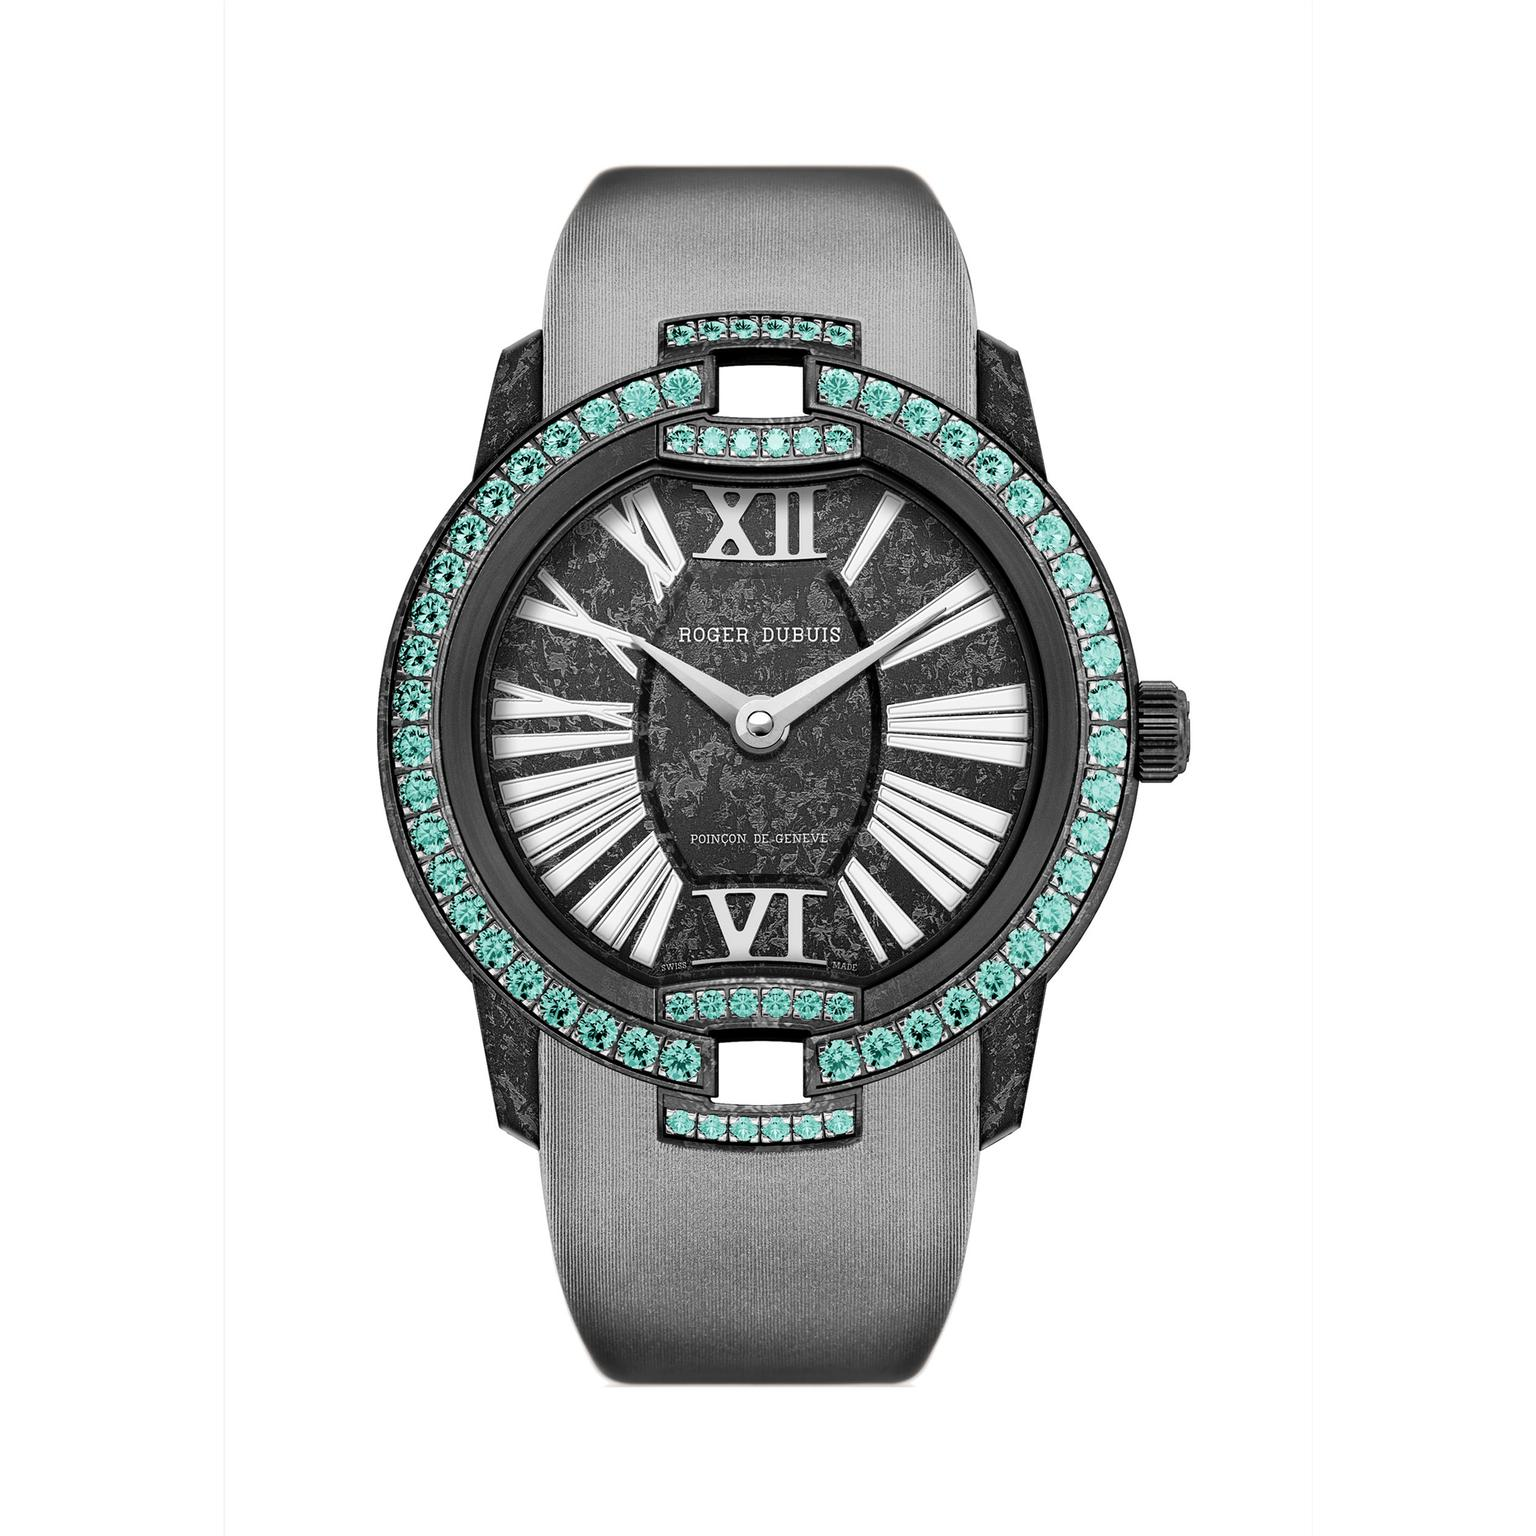 Roger Dubuis Black Velvet watch